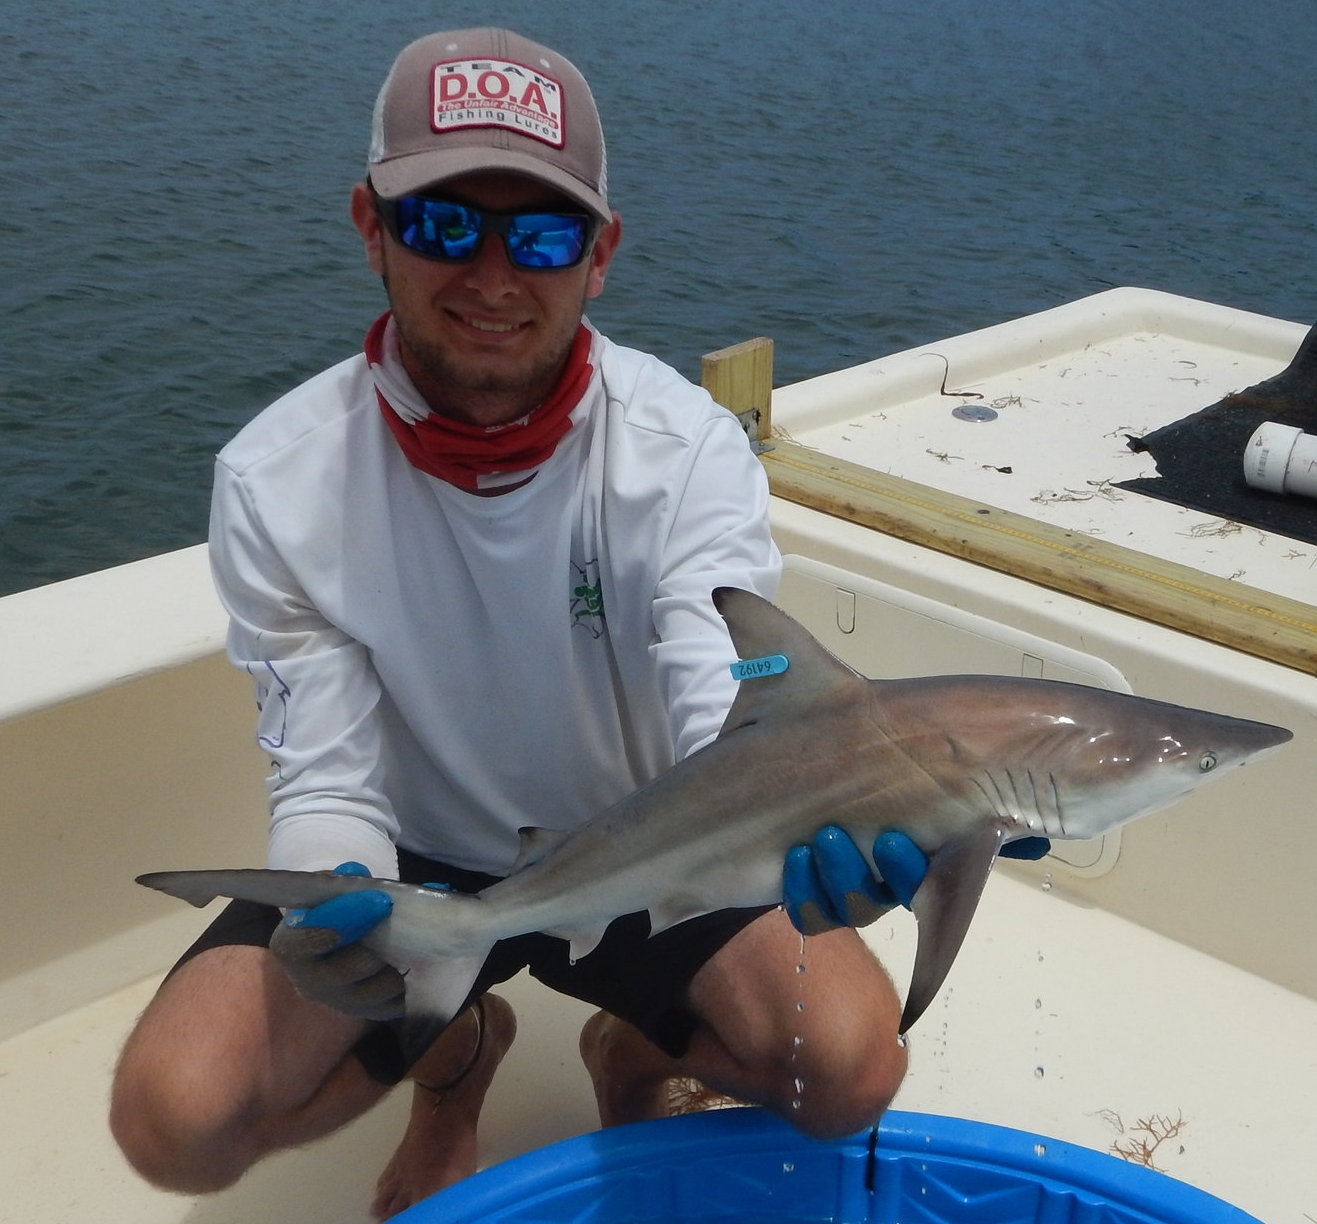 Alex Allen - Alex came to us from Florida Gulf Coast University (expected graduation May 2018).Alex worked on all projects of the Fisheries Ecology and Conservation Lab, but was principally in charge of Red Drum husbandry and captive observations of external tag impacts on fish behavior.